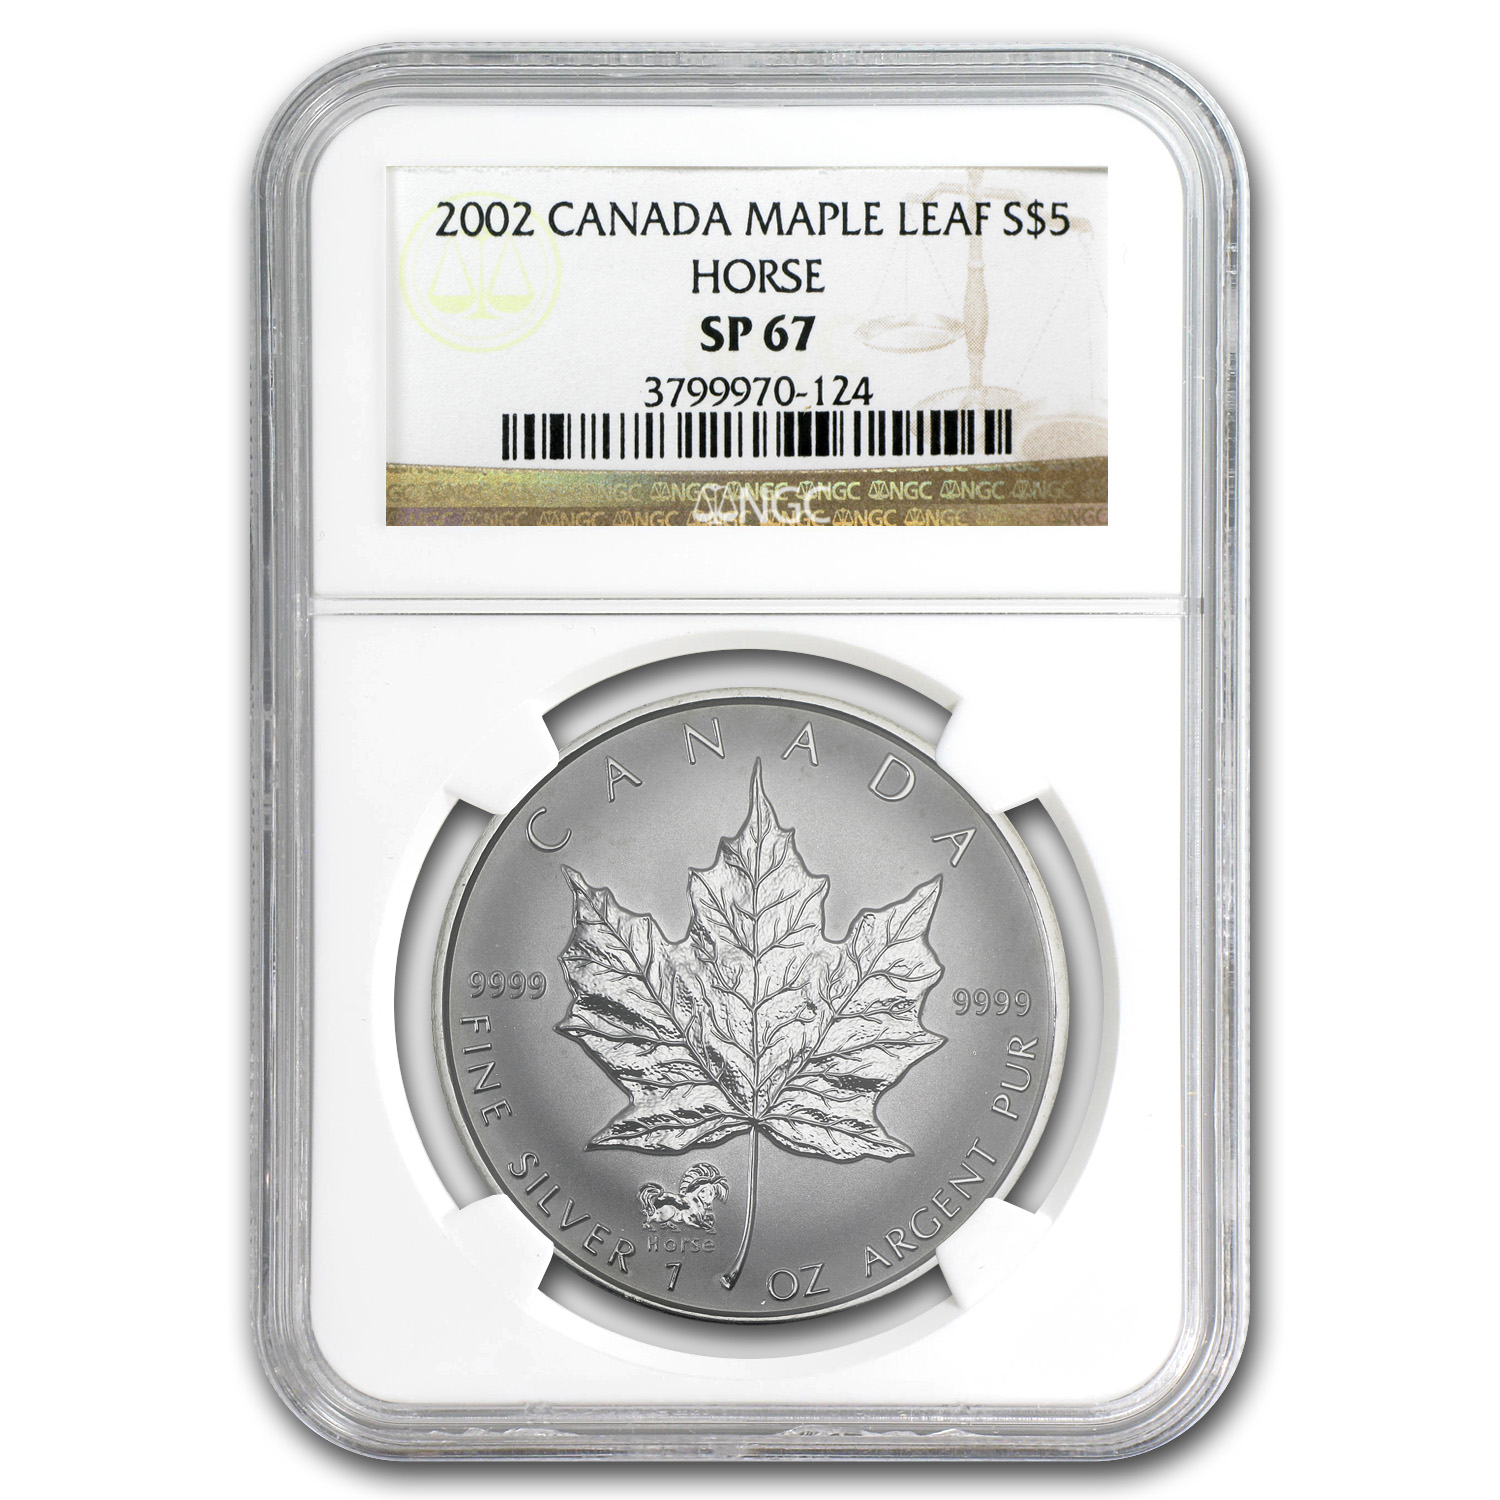 2002 1 oz Silver Canadian Maple Leaf Horse Privy - SP-67 NGC